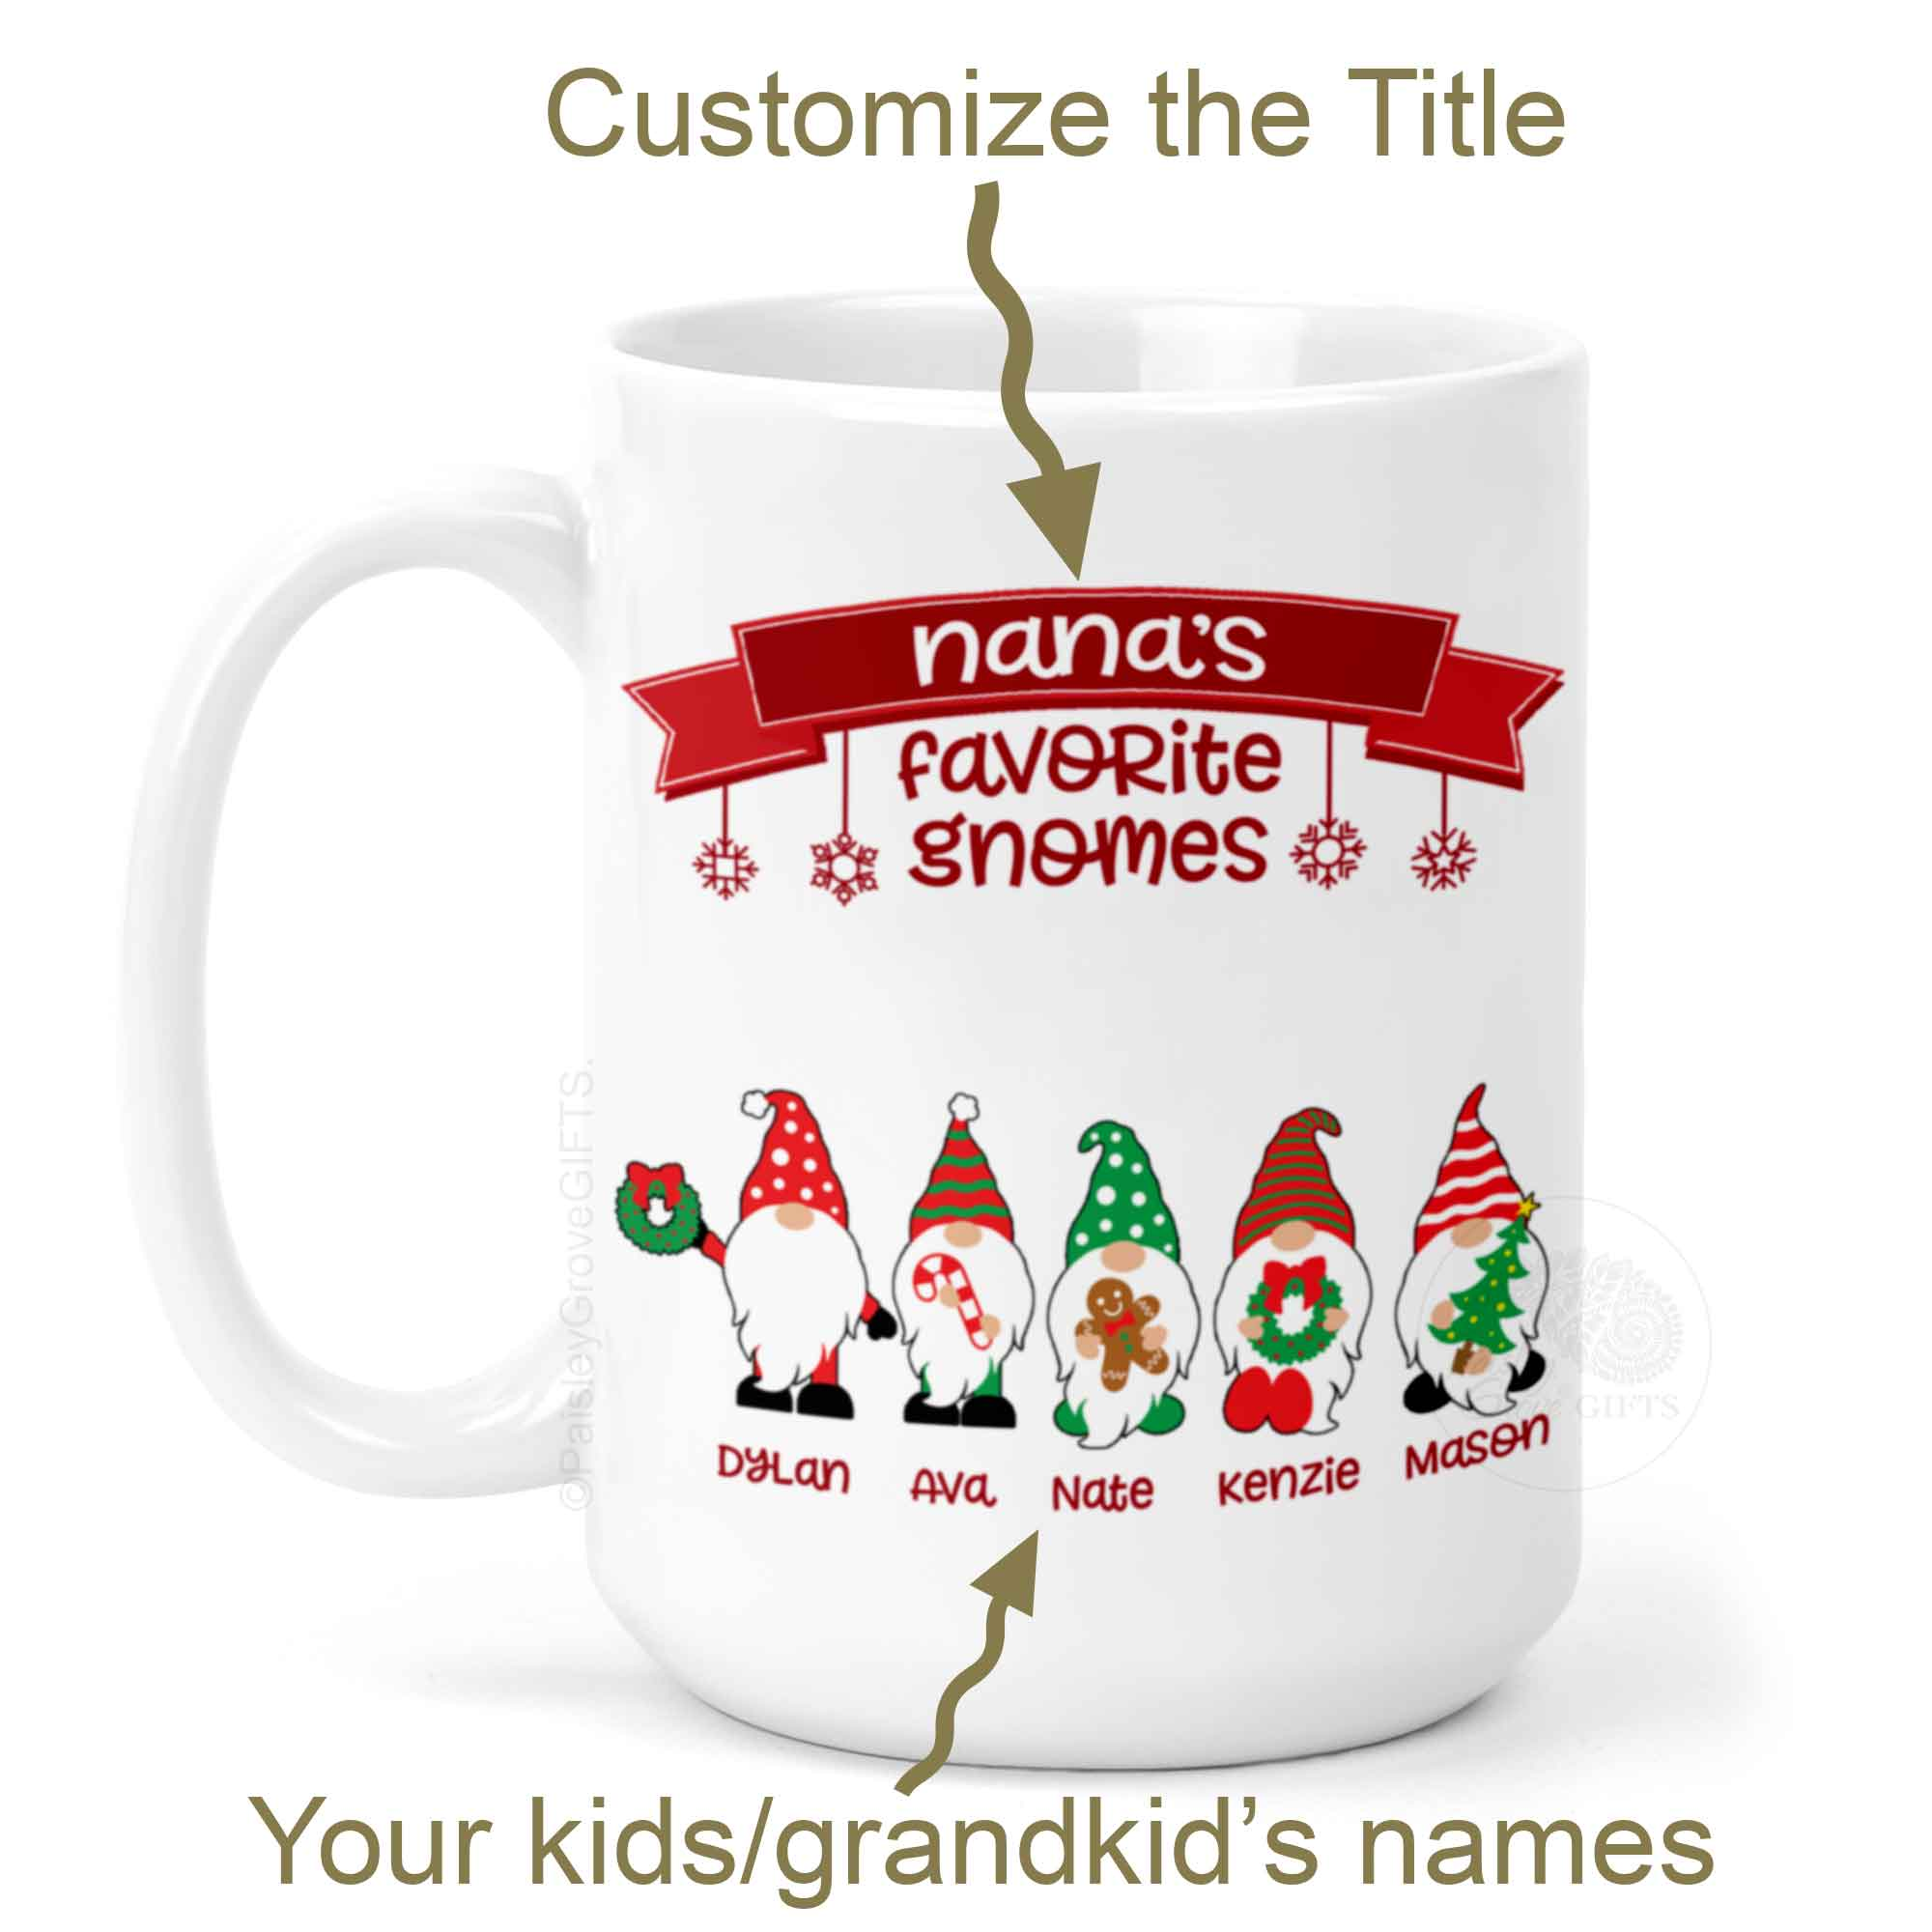 Personalized Grandma and Mom Mug with Gnomes and Kids' or Grandkids' Names | PaisleyGroveGIFTS P010a2